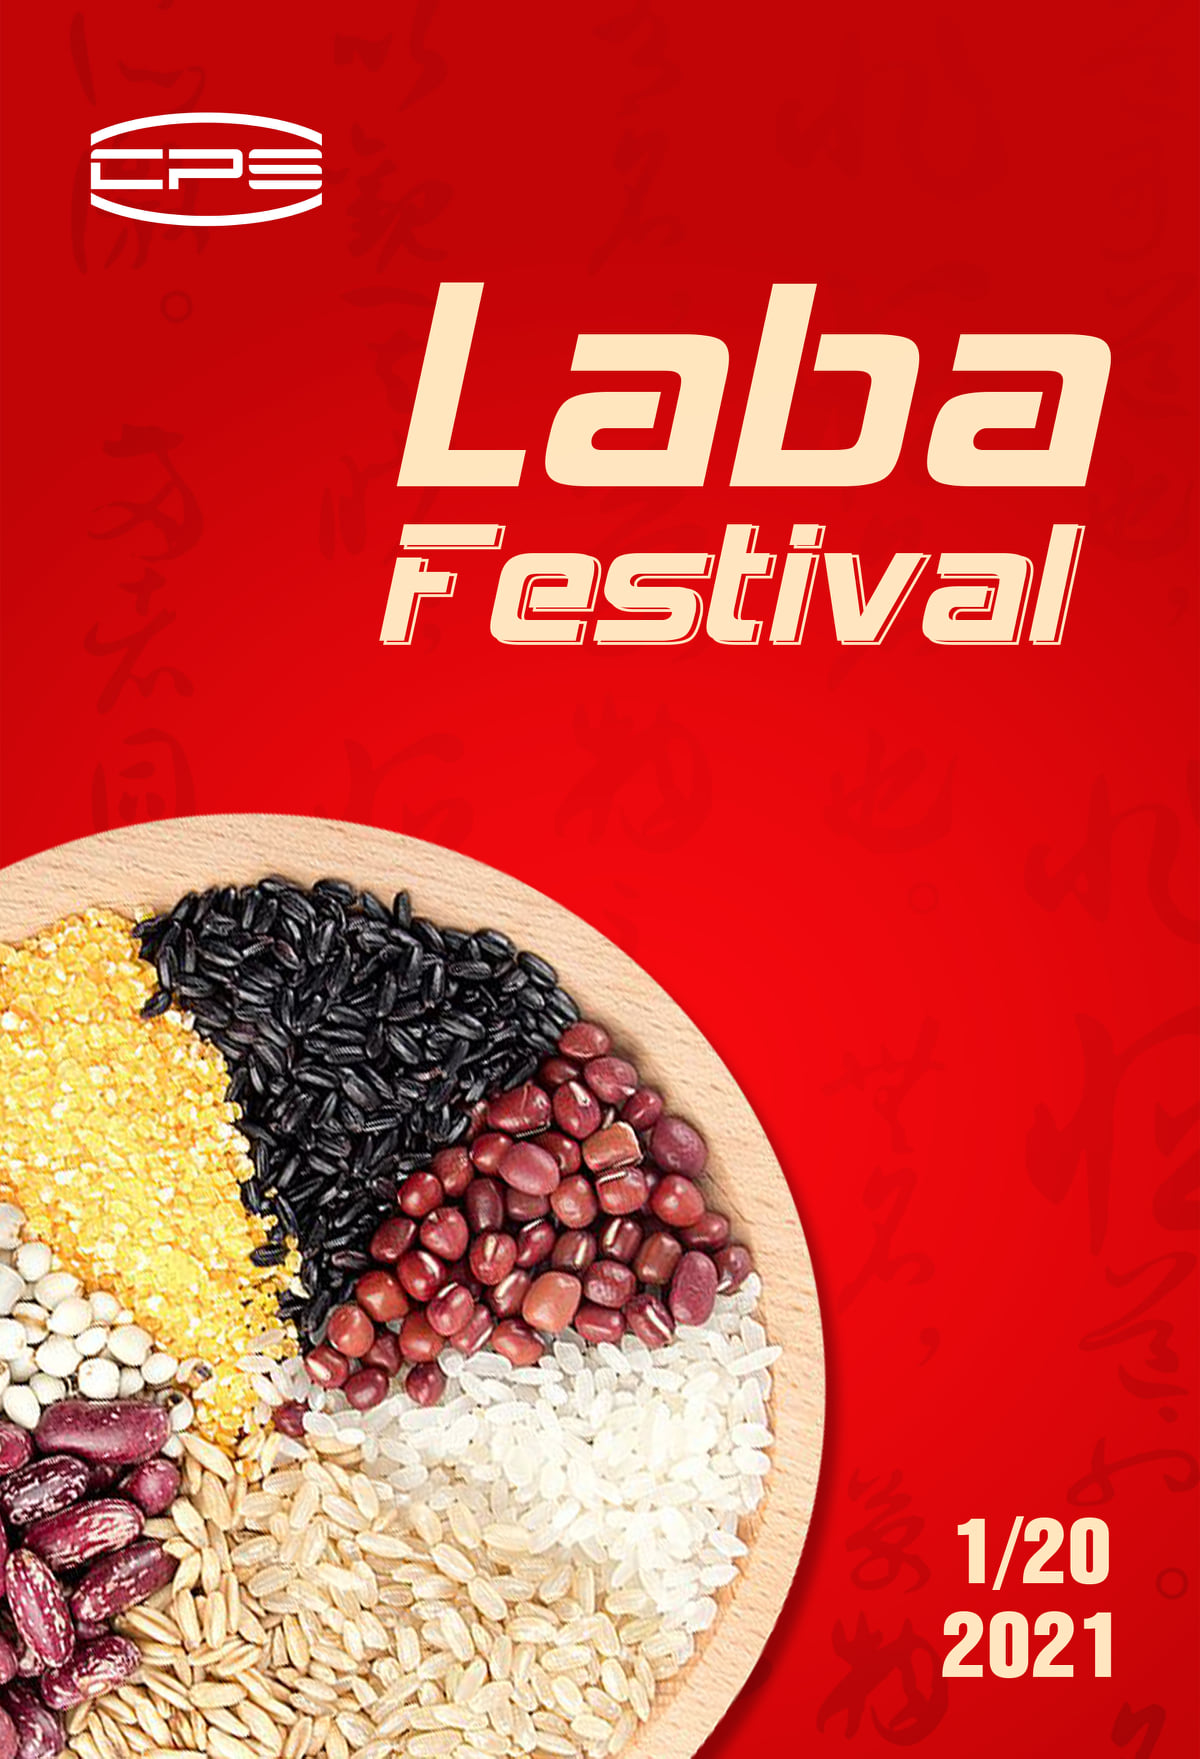 Hey guys. Special Chinese Festival today——Laba Festival. 🥳